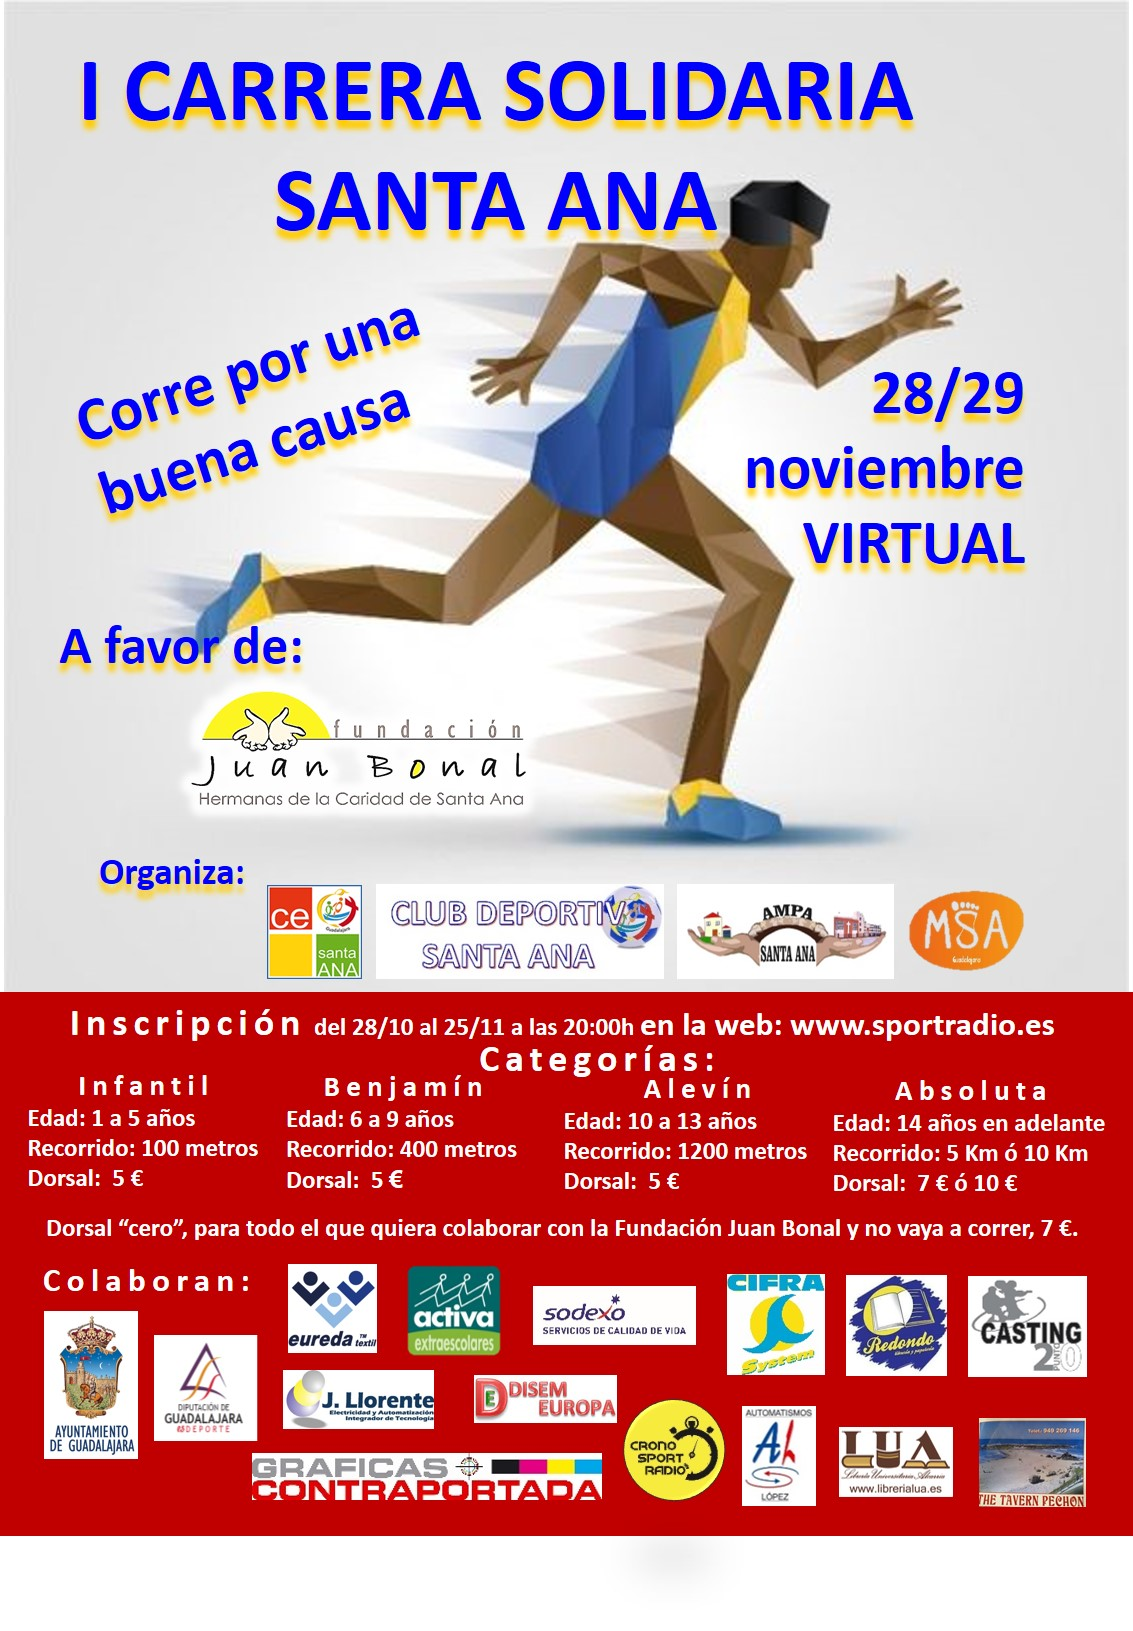 1 CARRERA SOLIDARIA VIRTUAL 28 29